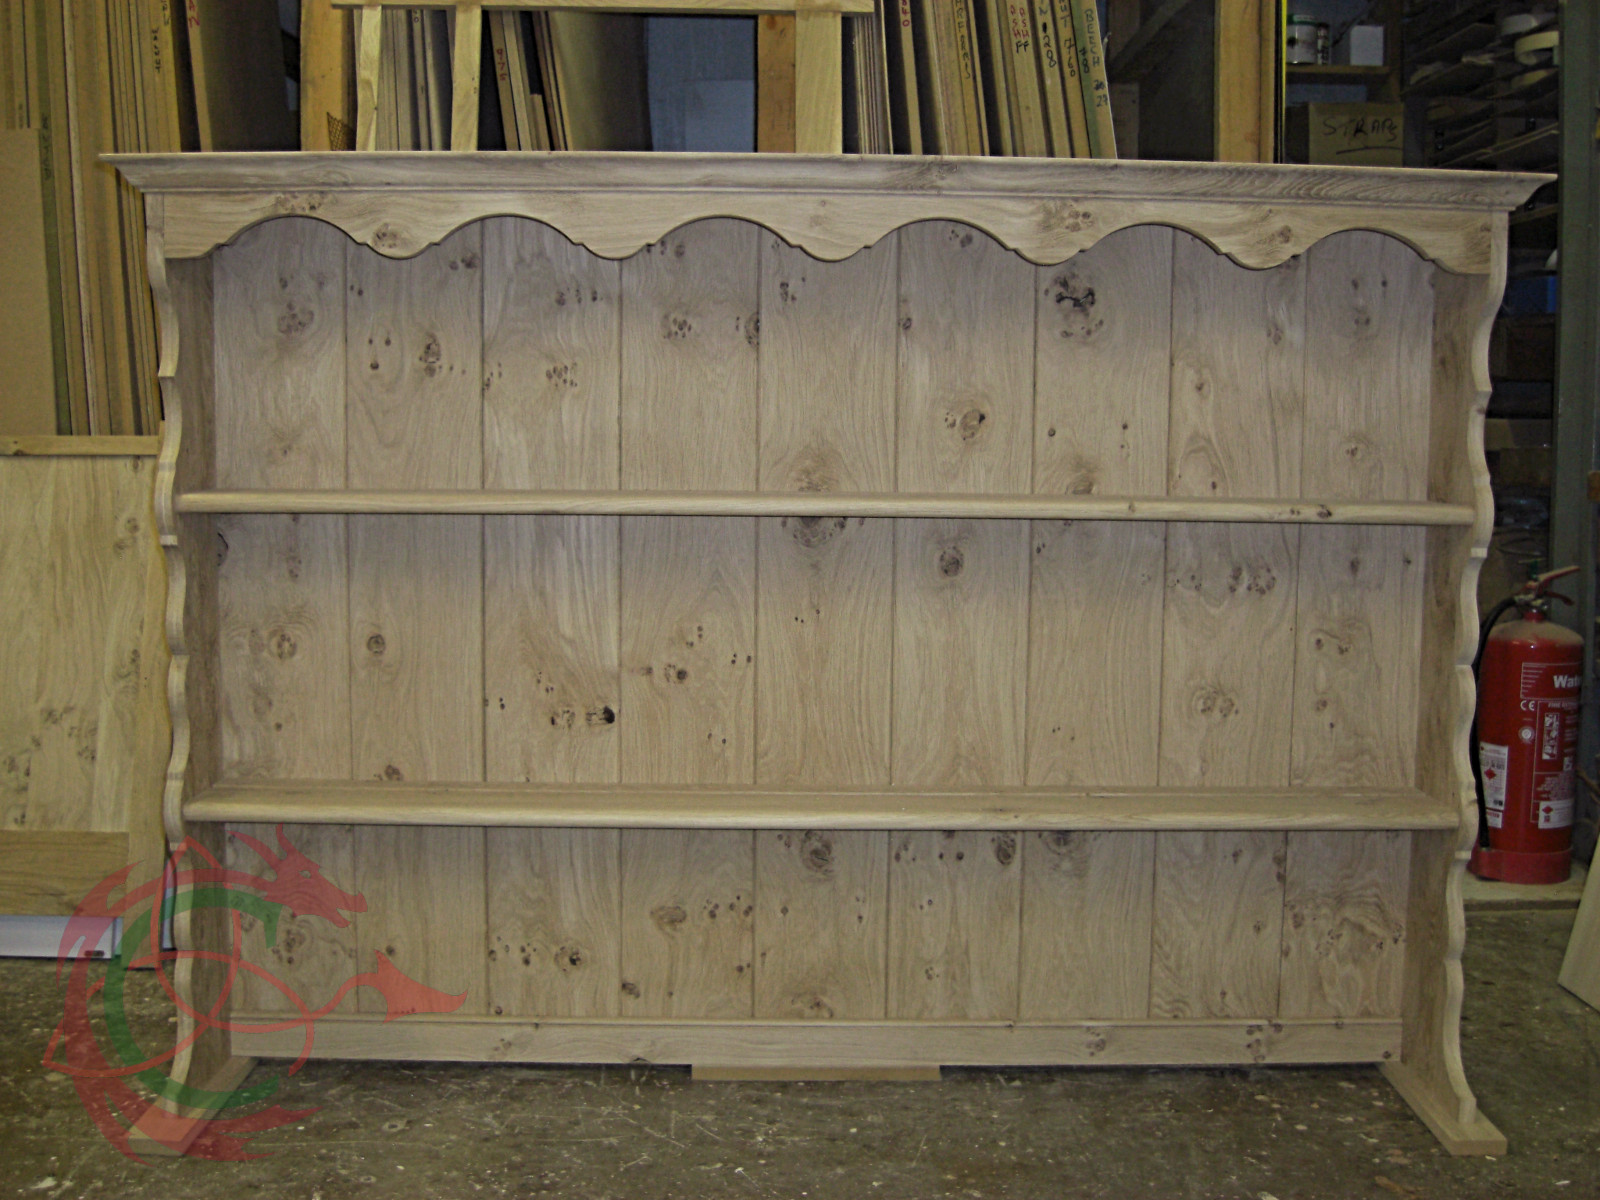 Welsh dresser rack with scrollwork freize and sides; made in pippy oak